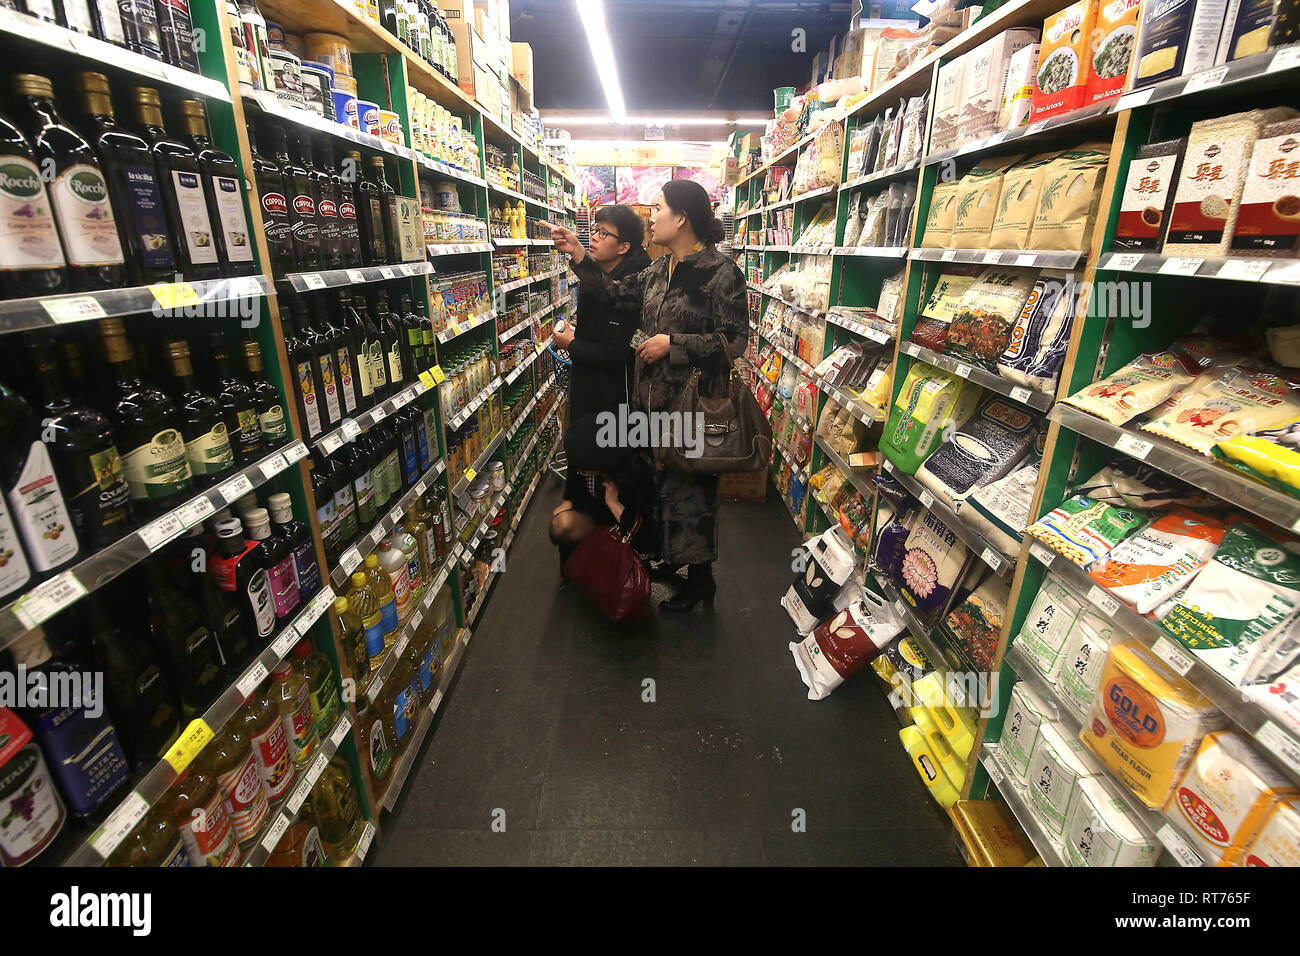 Beijing, China. 27th Nov, 2018. 'Made In U.S.A' and American brands and products are sold at an upscale supermarket in Beijing on November 27, 2018. U.S. President Donald Trump warned it's 'highly unlikely' that he would delay an increase in tariffs from 10 percent to 25 percent on January 1, just four days before a summit with Chinese President Xi Jinping. Credit: Todd Lee/ZUMA Wire/ZUMAPRESS.com/Alamy Live News - Stock Image